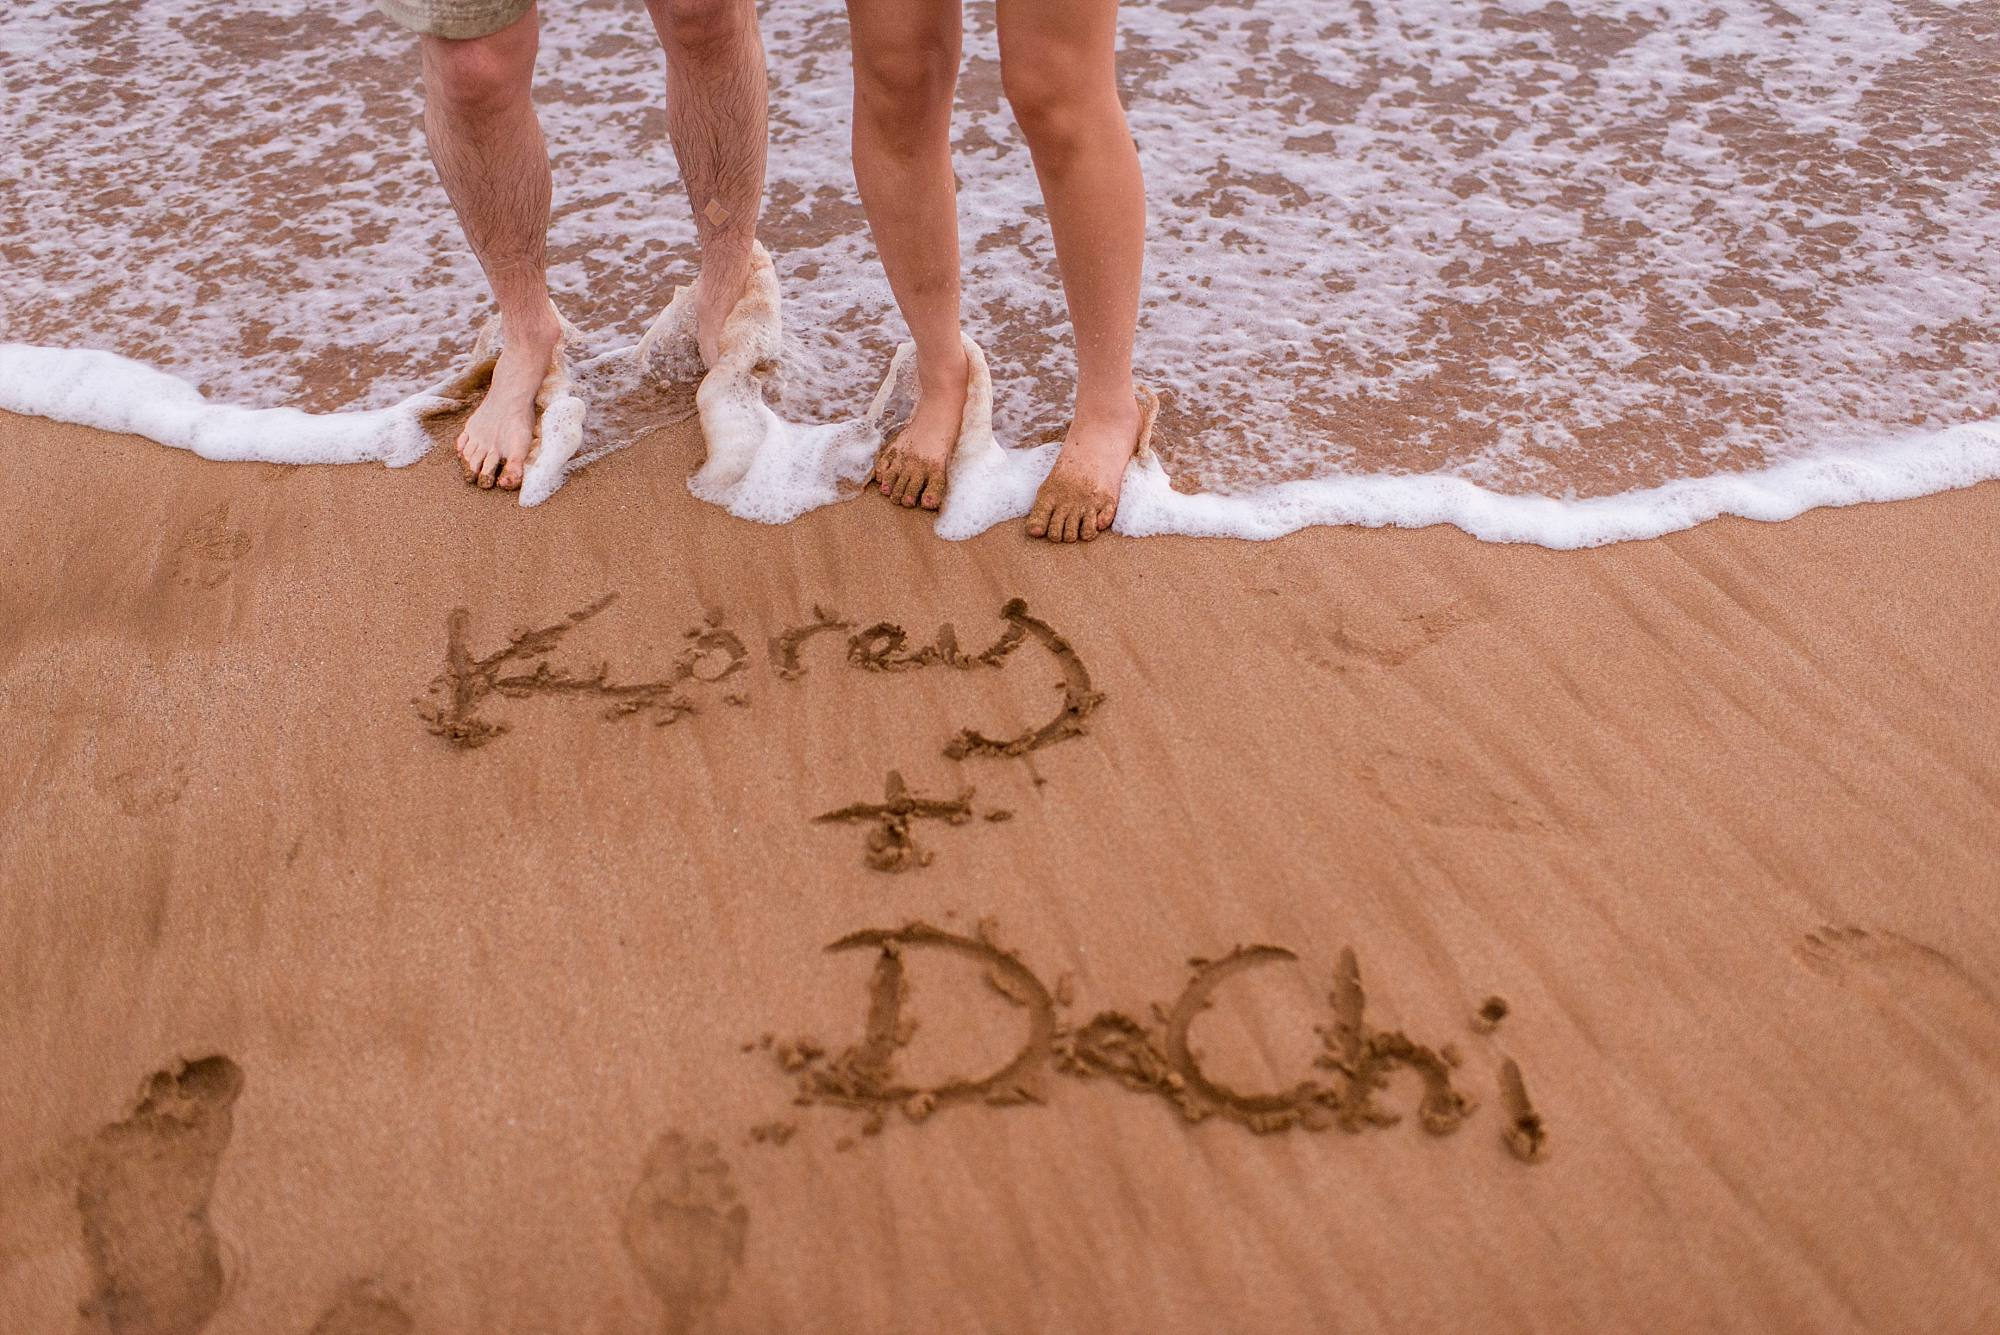 Lovers names written in the sand by their feet